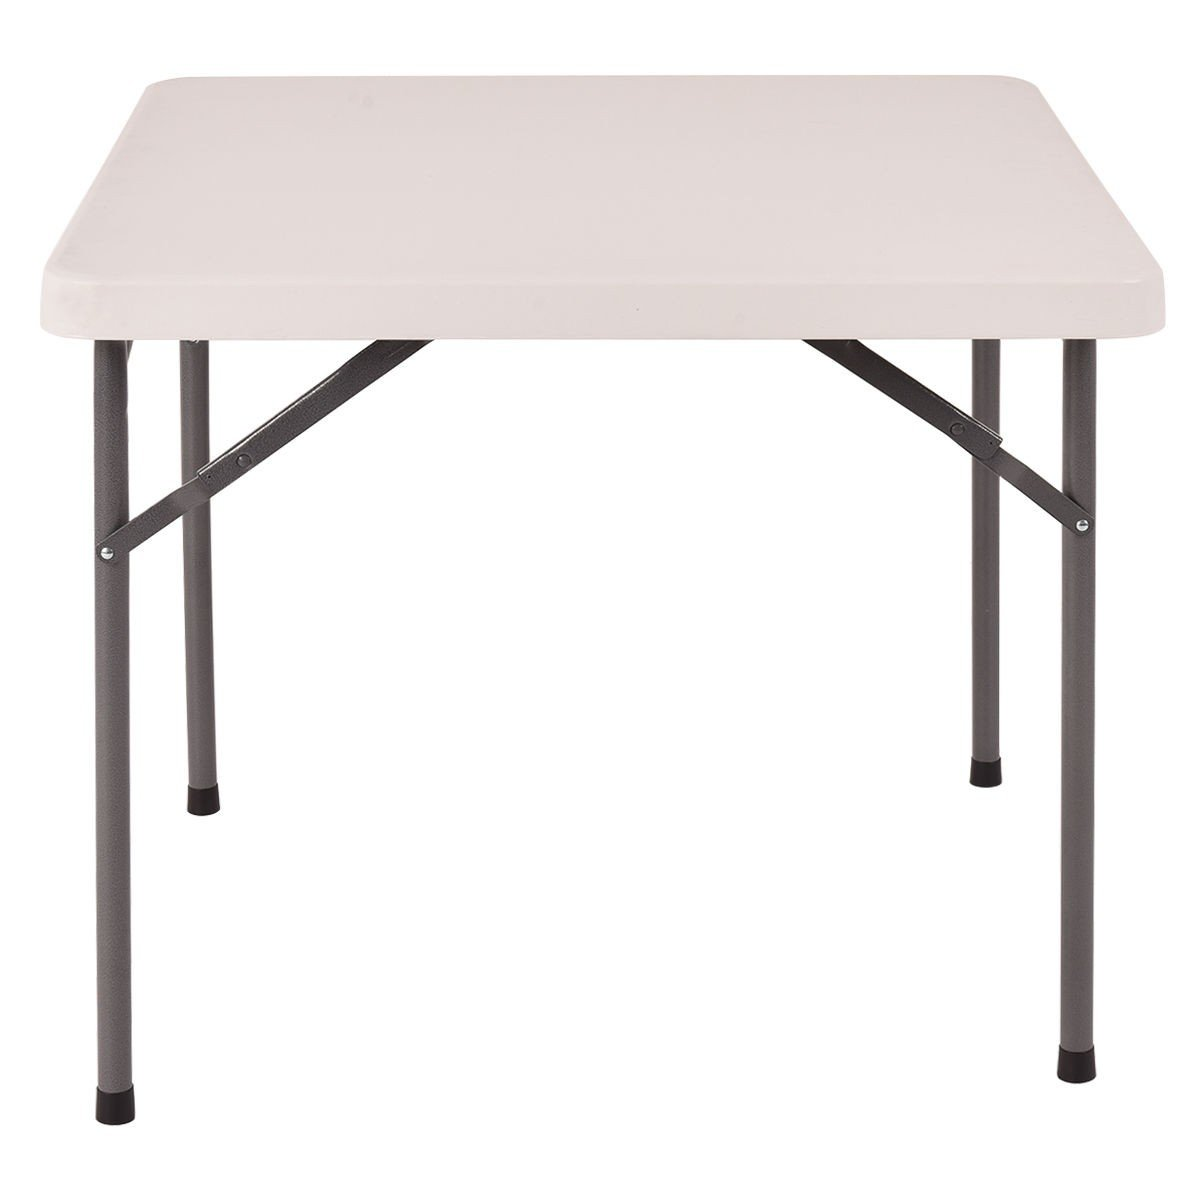 MRT SUPPLY 34'' Square Multipurpose Folding Banquet Picnic Table with Ebook